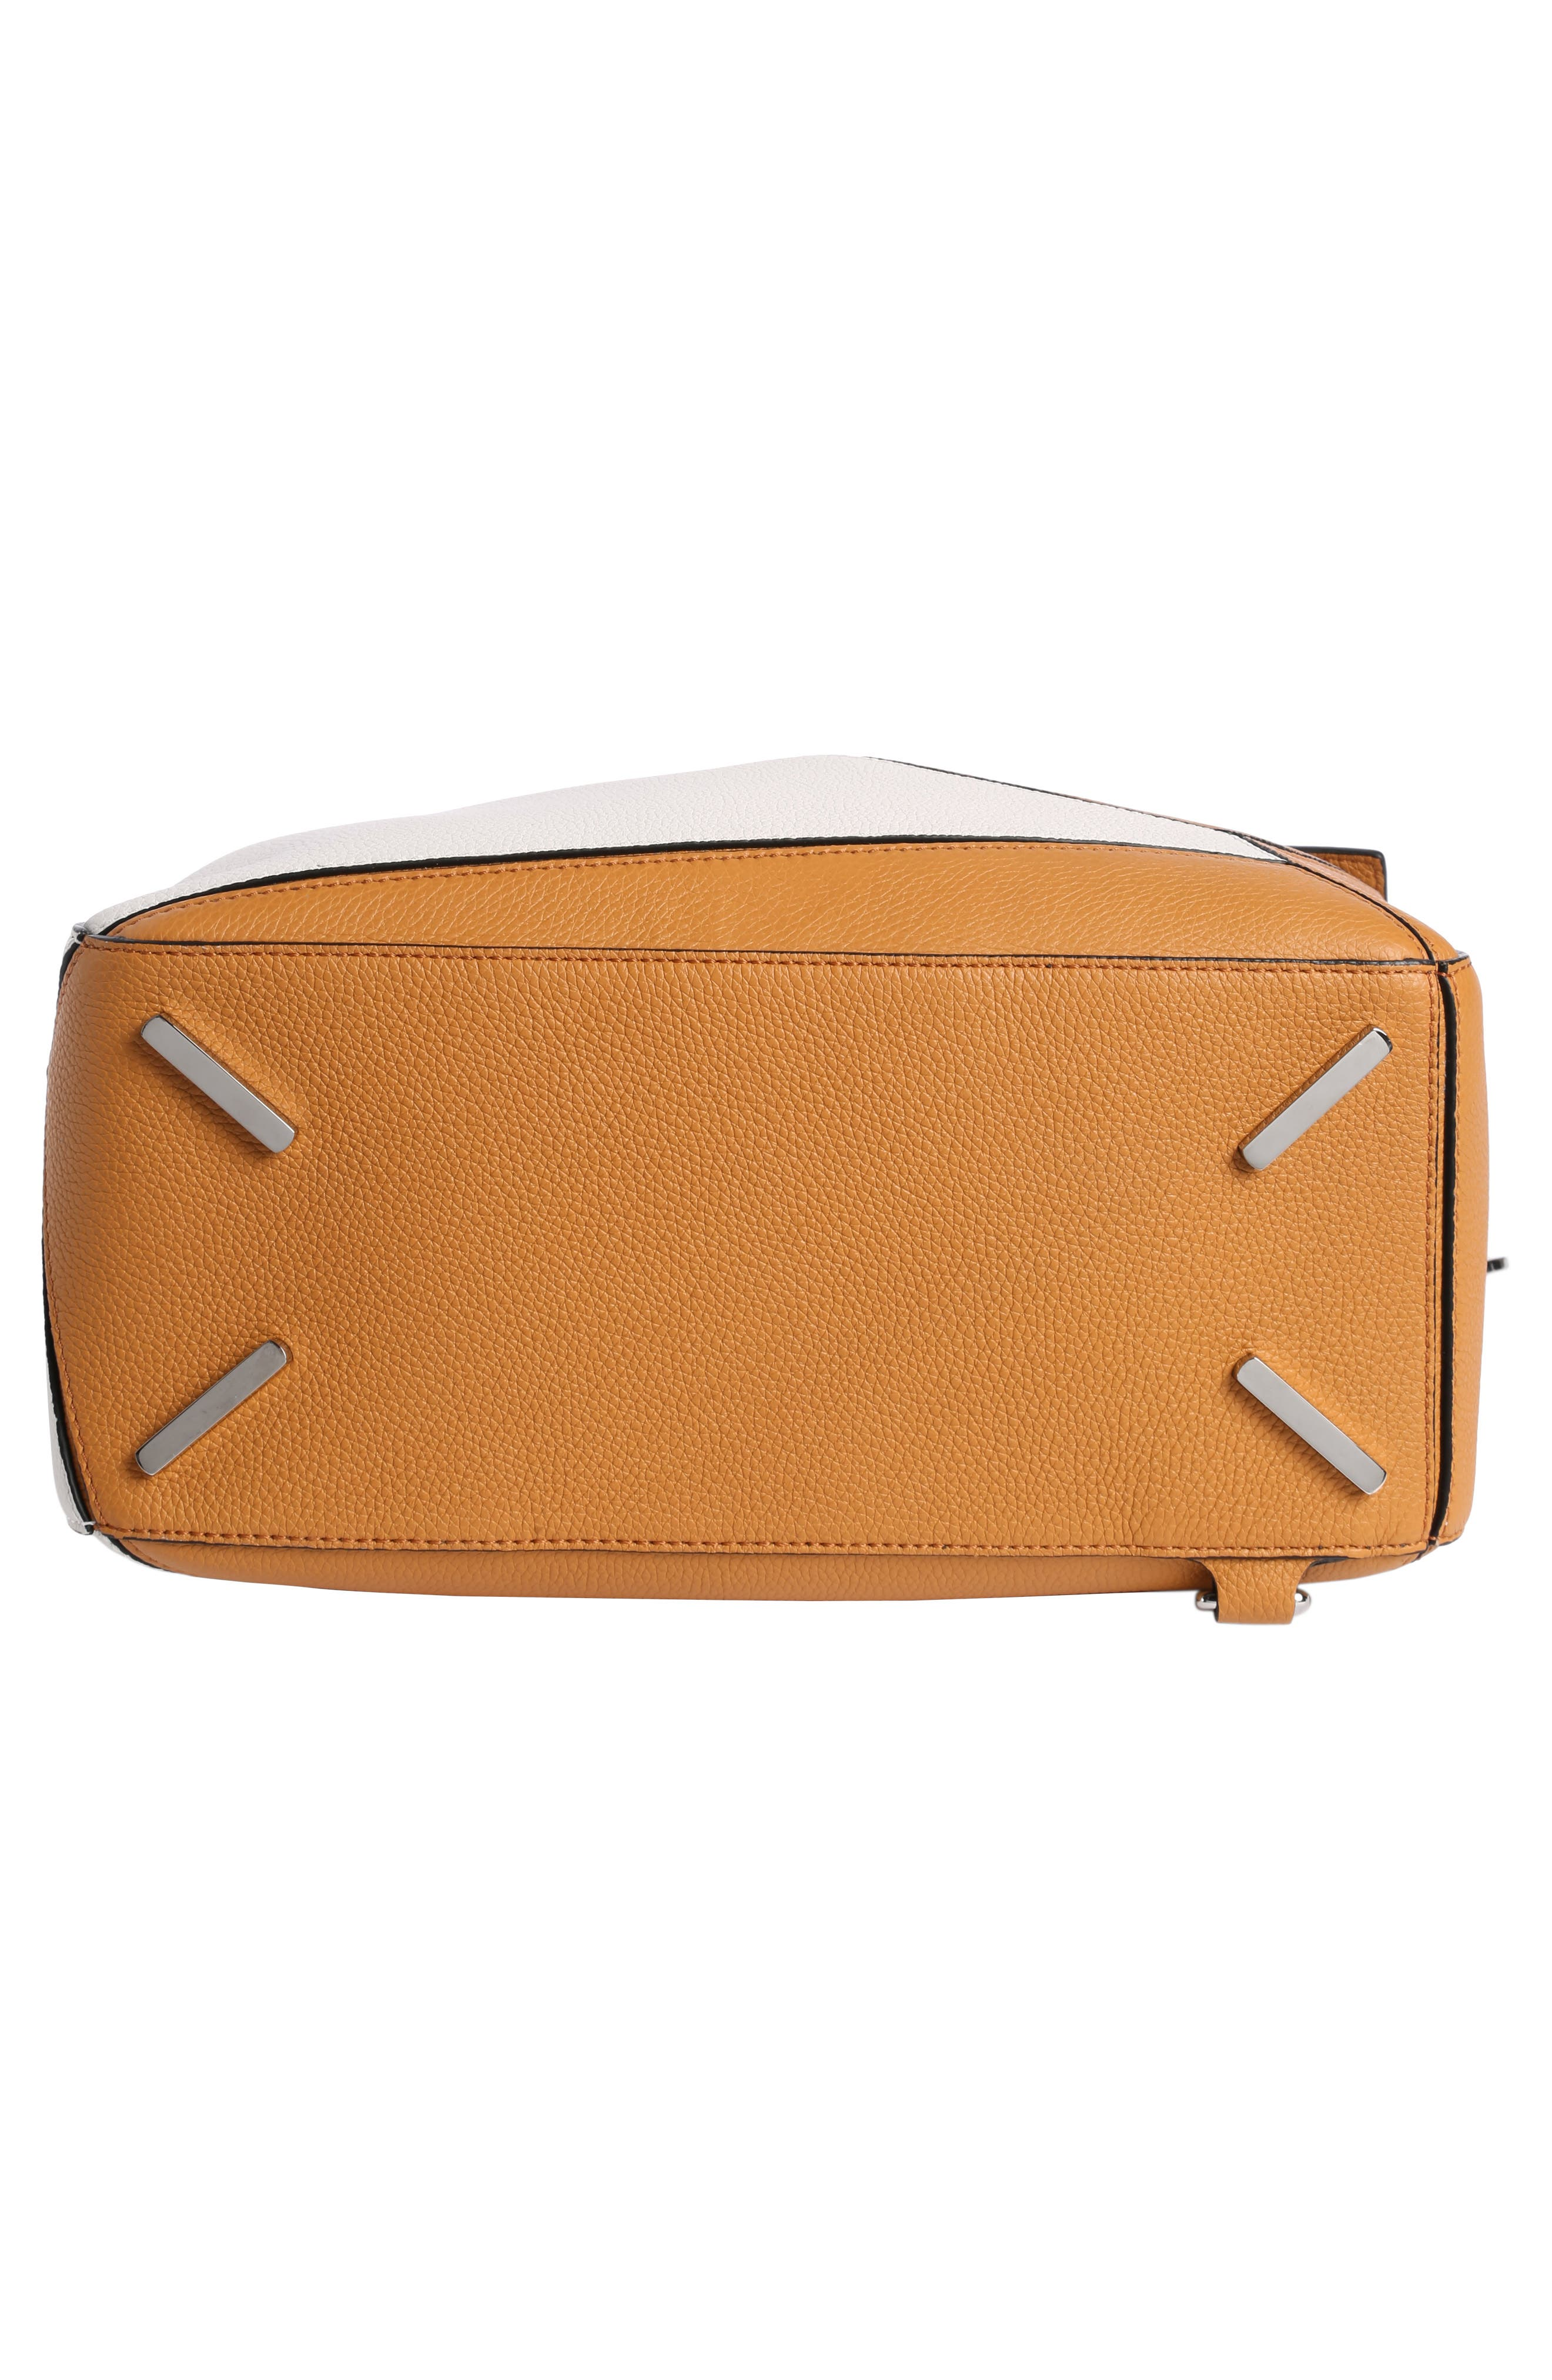 Puzzle Colorblock Calfskin Leather Bag,                             Alternate thumbnail 4, color,                             Soft White/ Amber